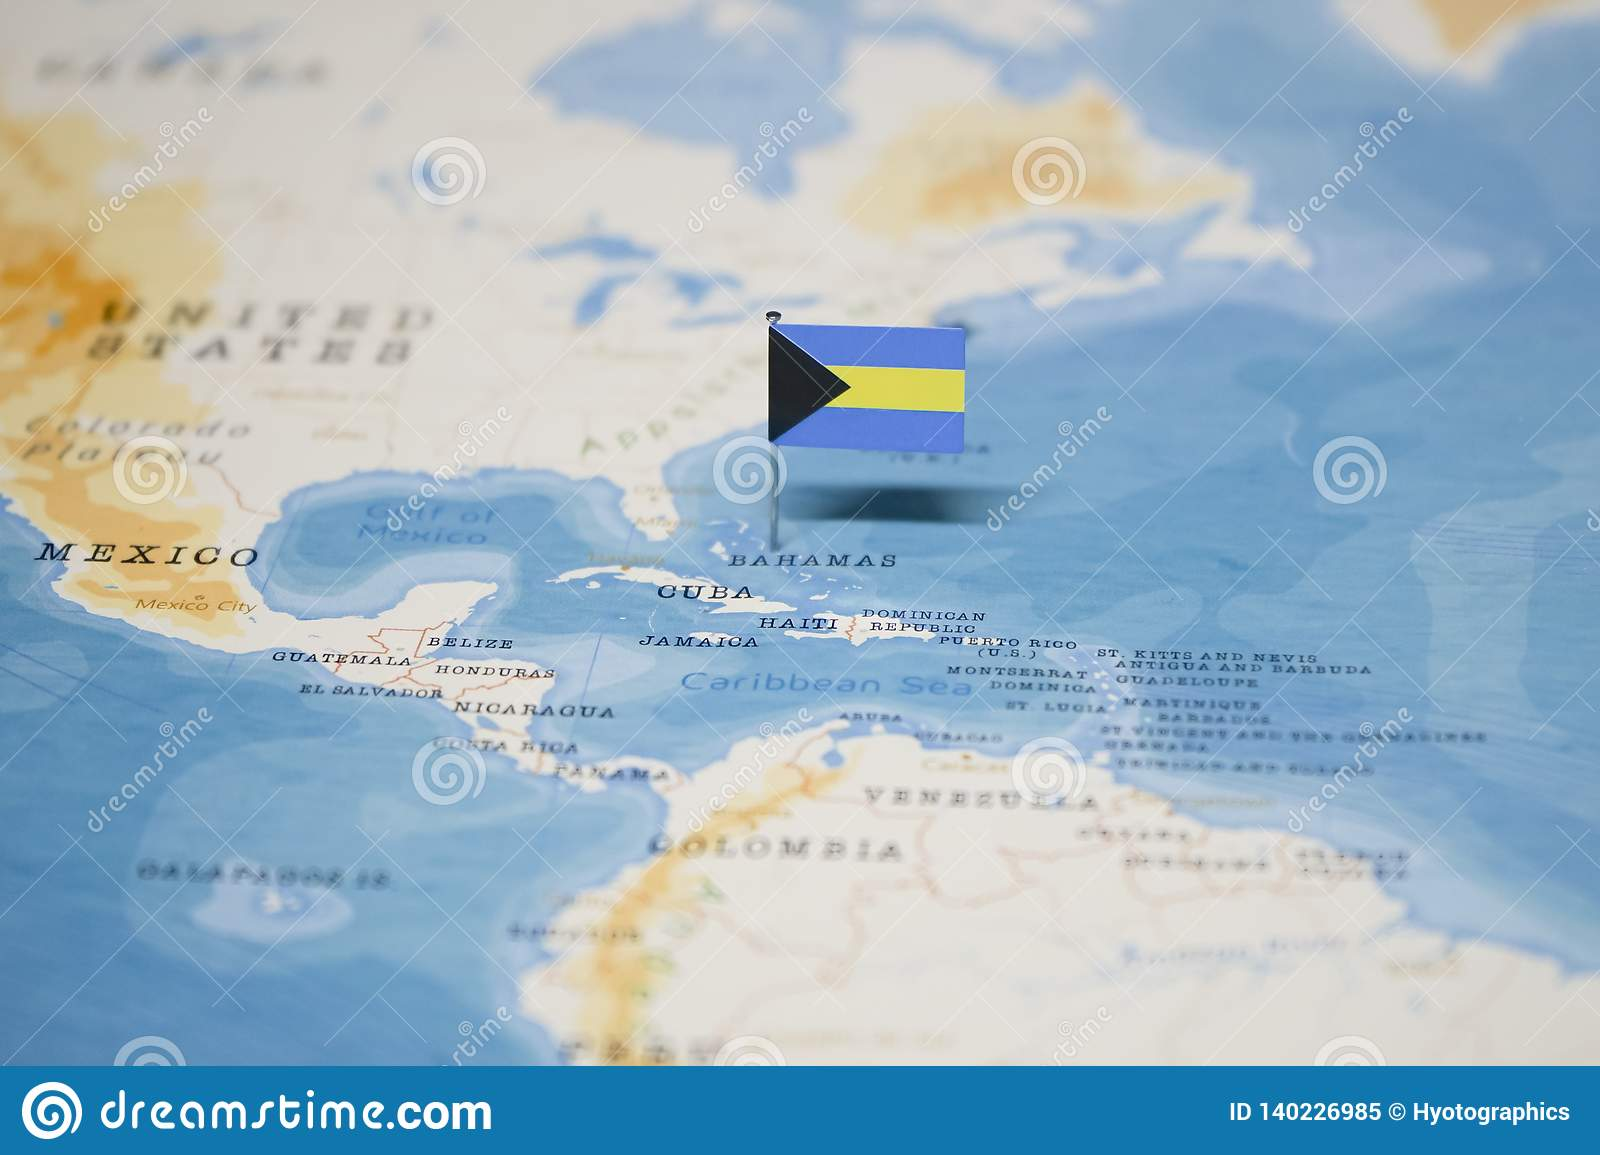 Picture of: The Flag Of Bahamas In The World Map Stock Image Image Of Location Destination 140226985